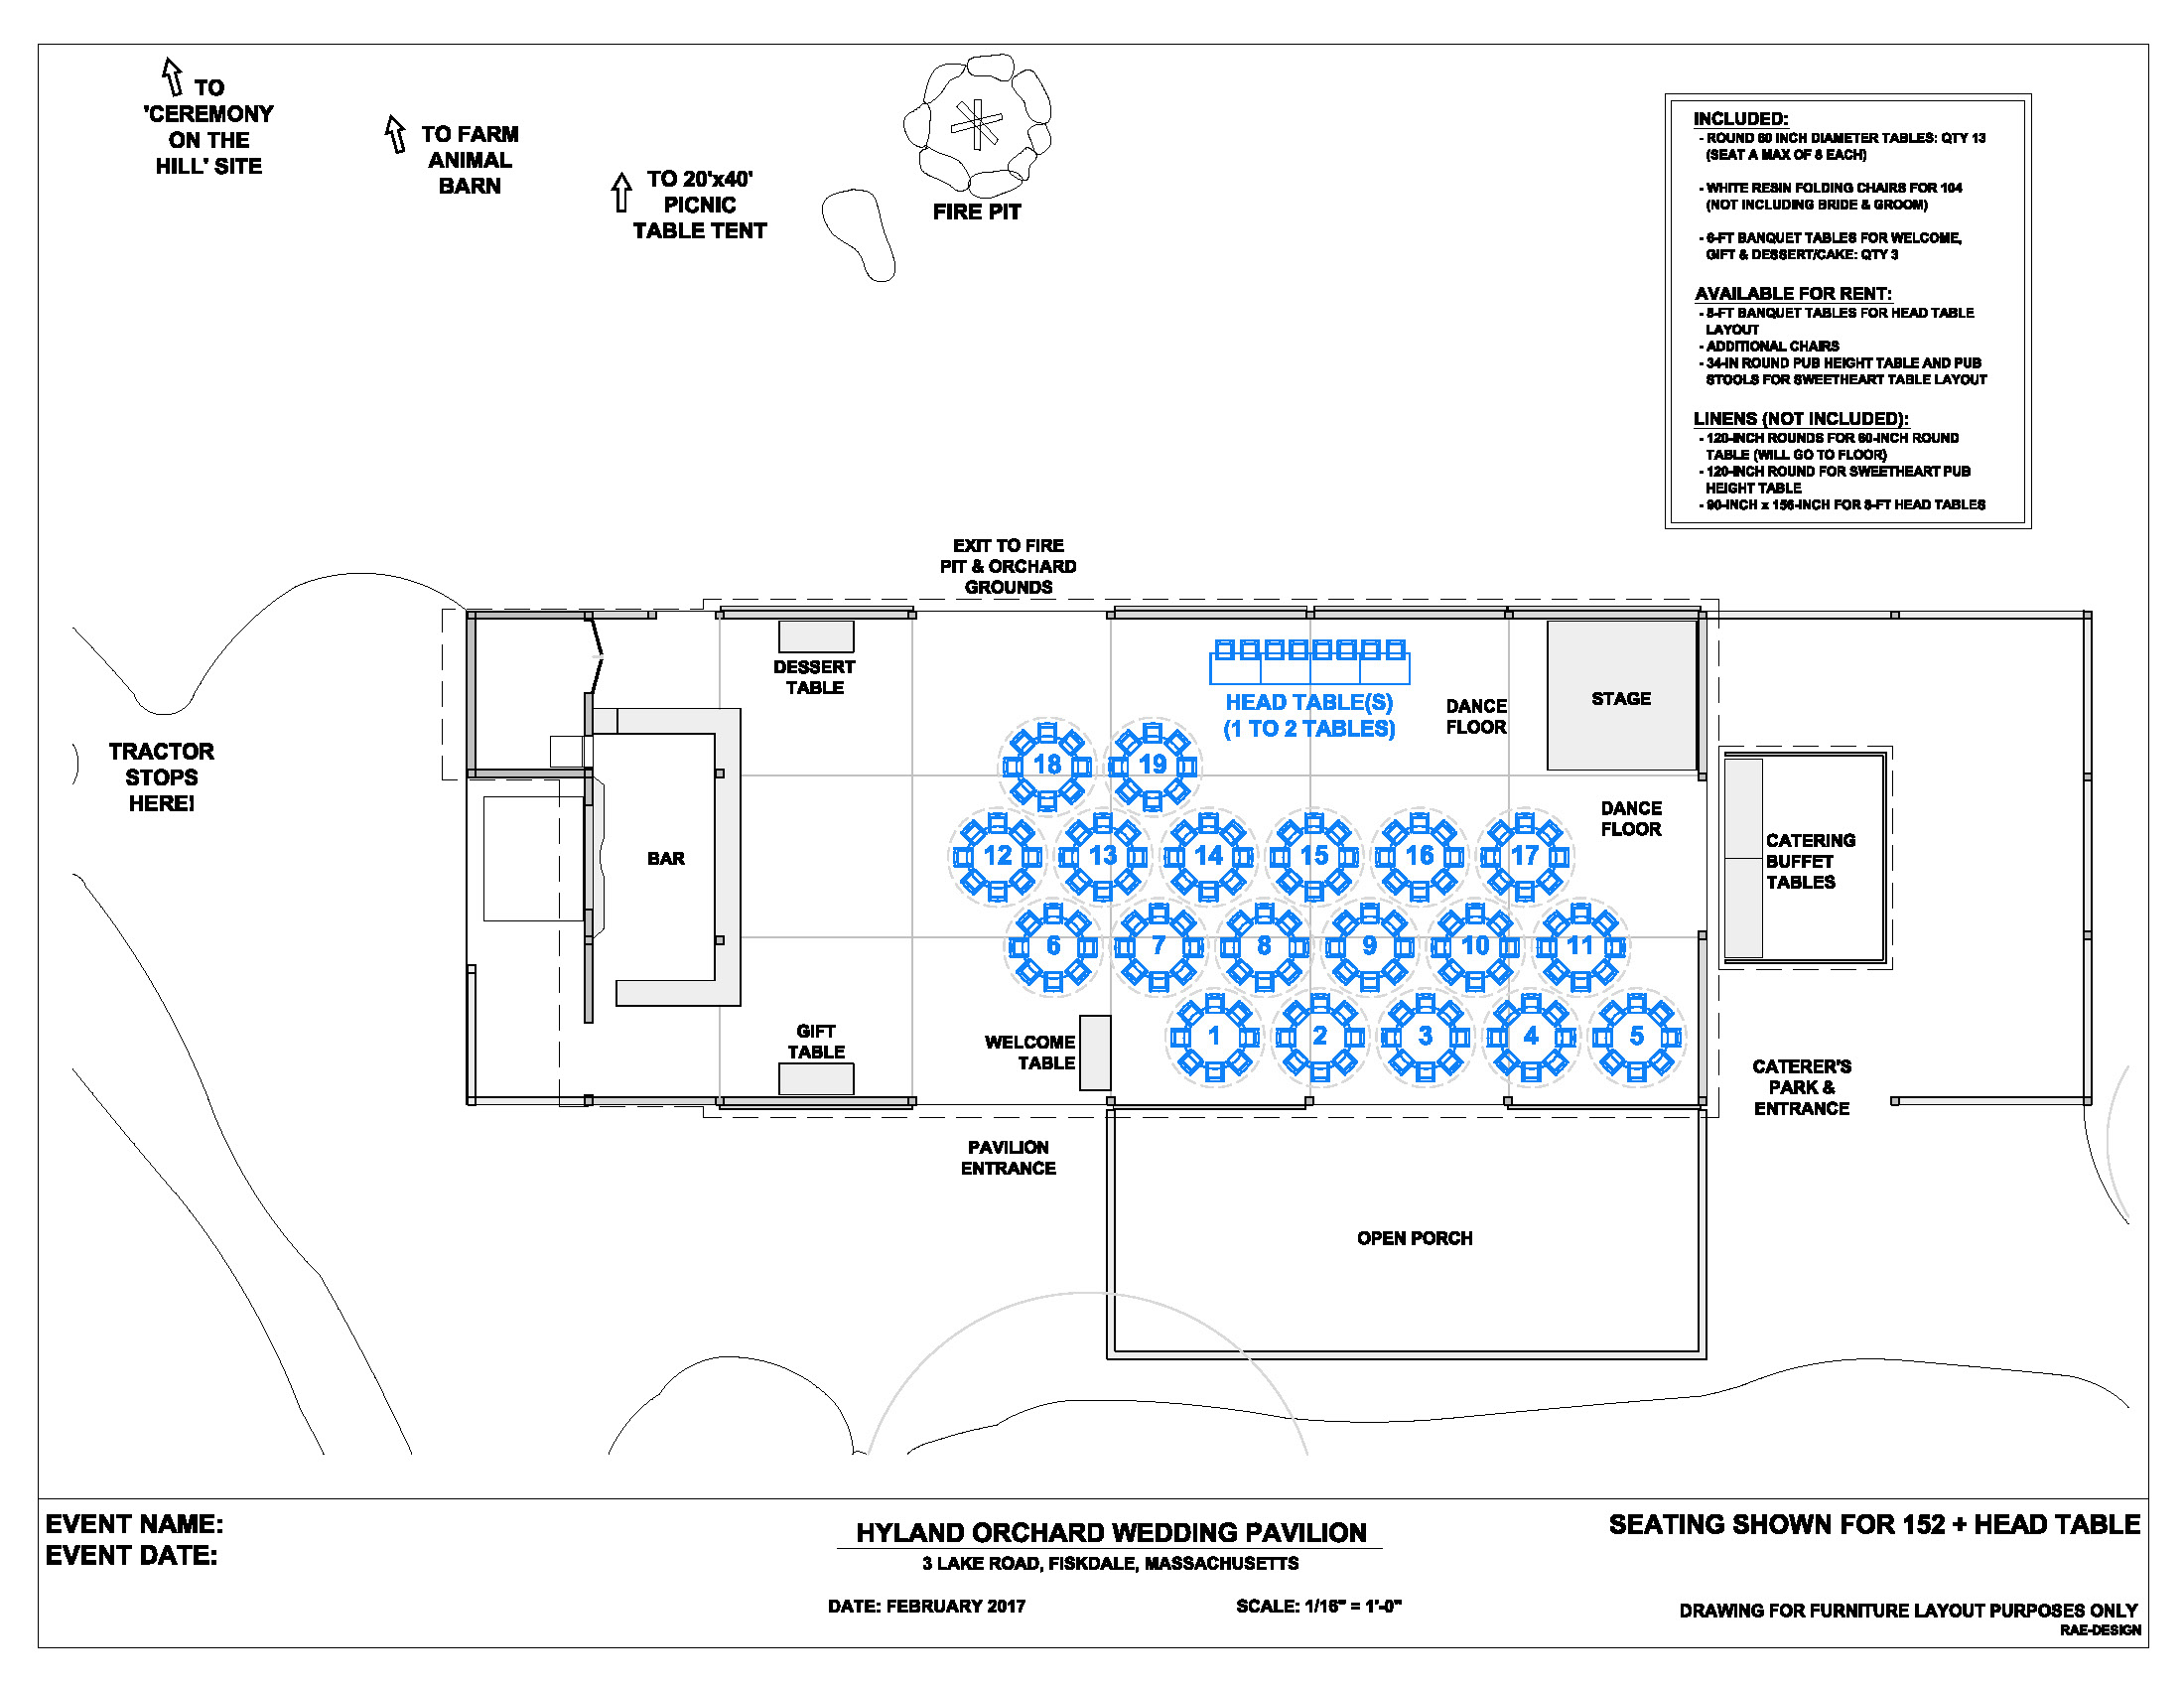 Wedding floor plans hyland orchard brewery for Wedding floor plan